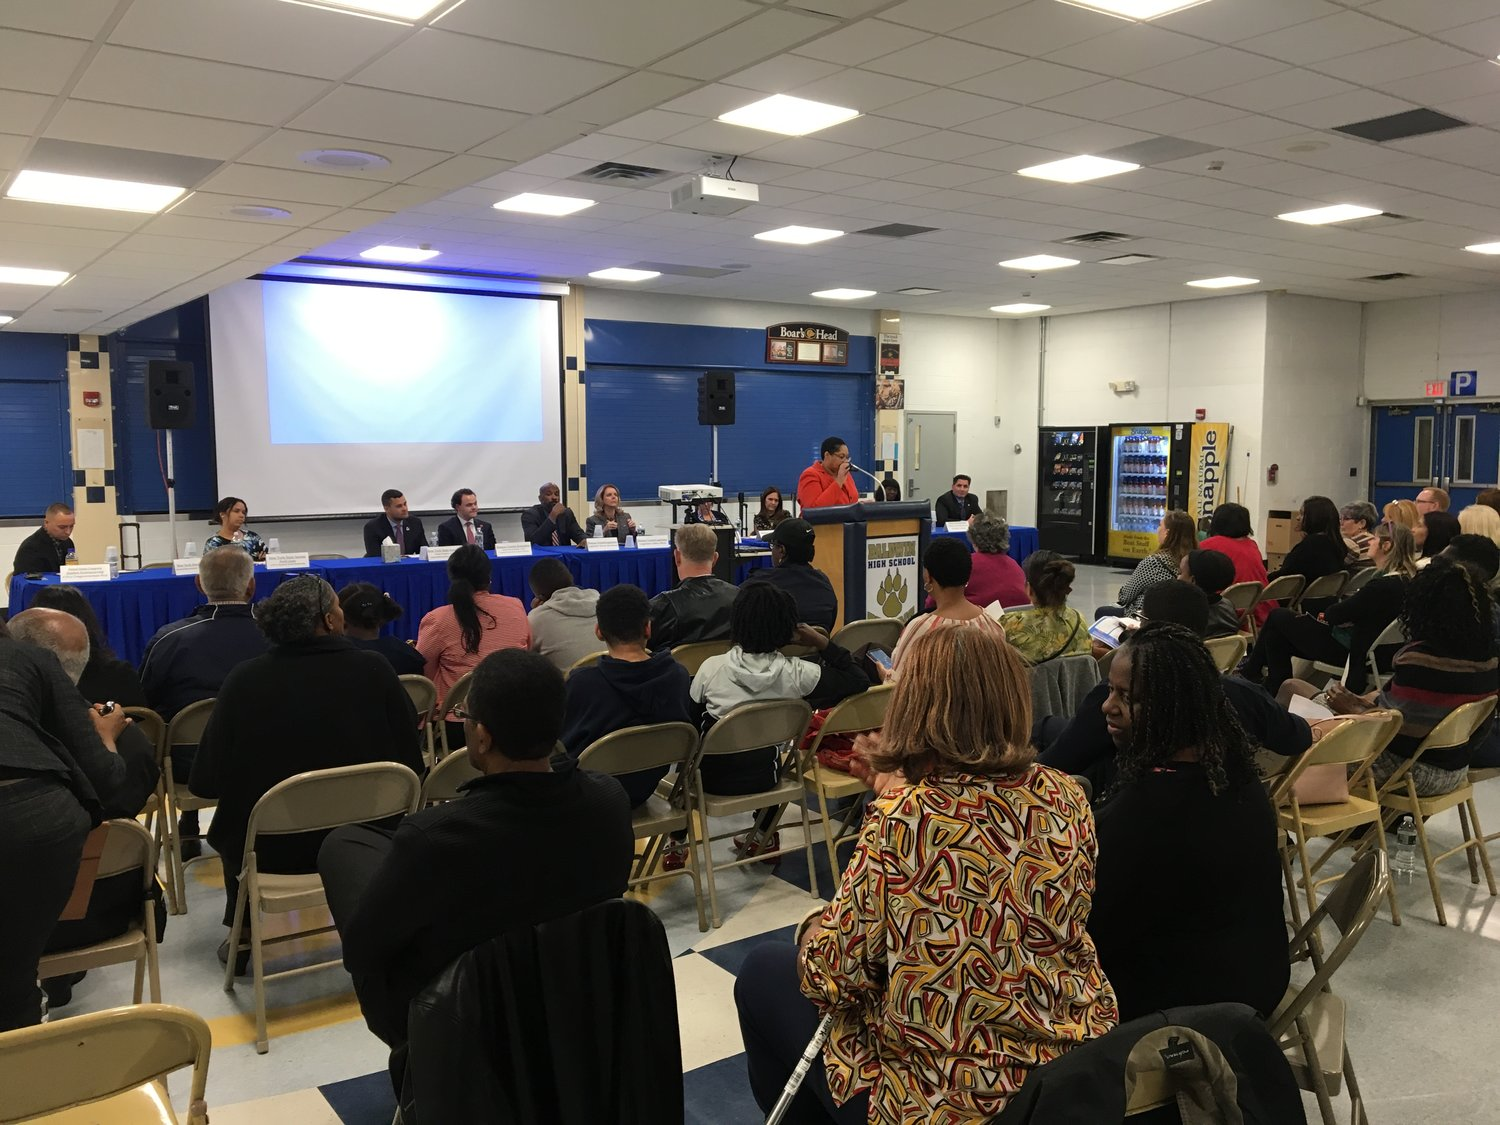 Dozens of people made their way to the Baldwin High School cafeteria on Oct. 10 for the annual Baldwin Council of PTAs Legislative Forum.